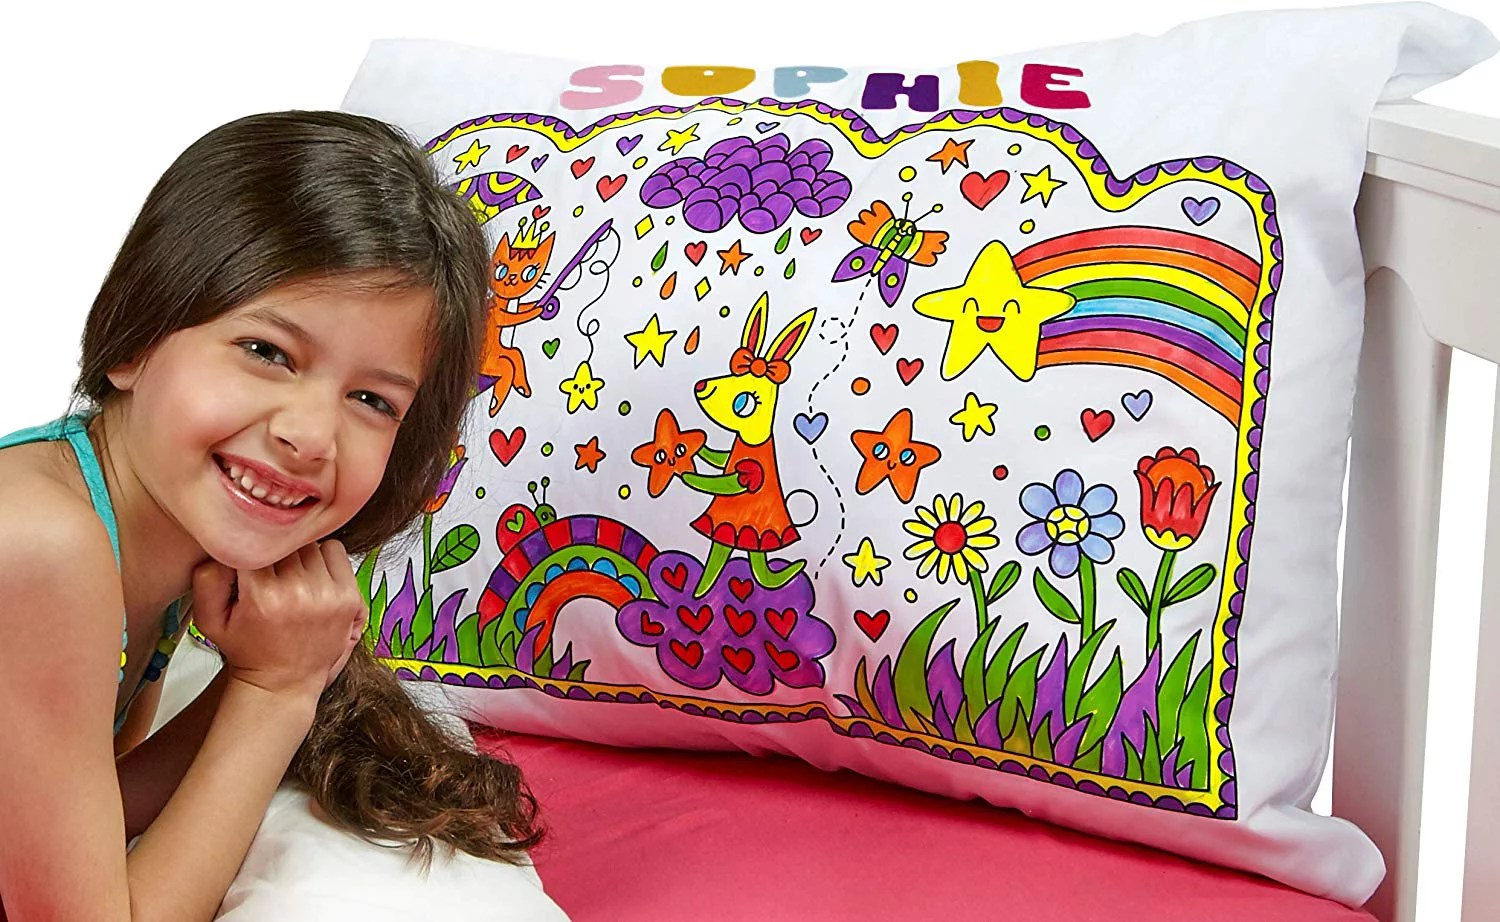 let s create my pillowart diy white pillow case standard size paint make your own pillowcase art crafts kits for children party favor set